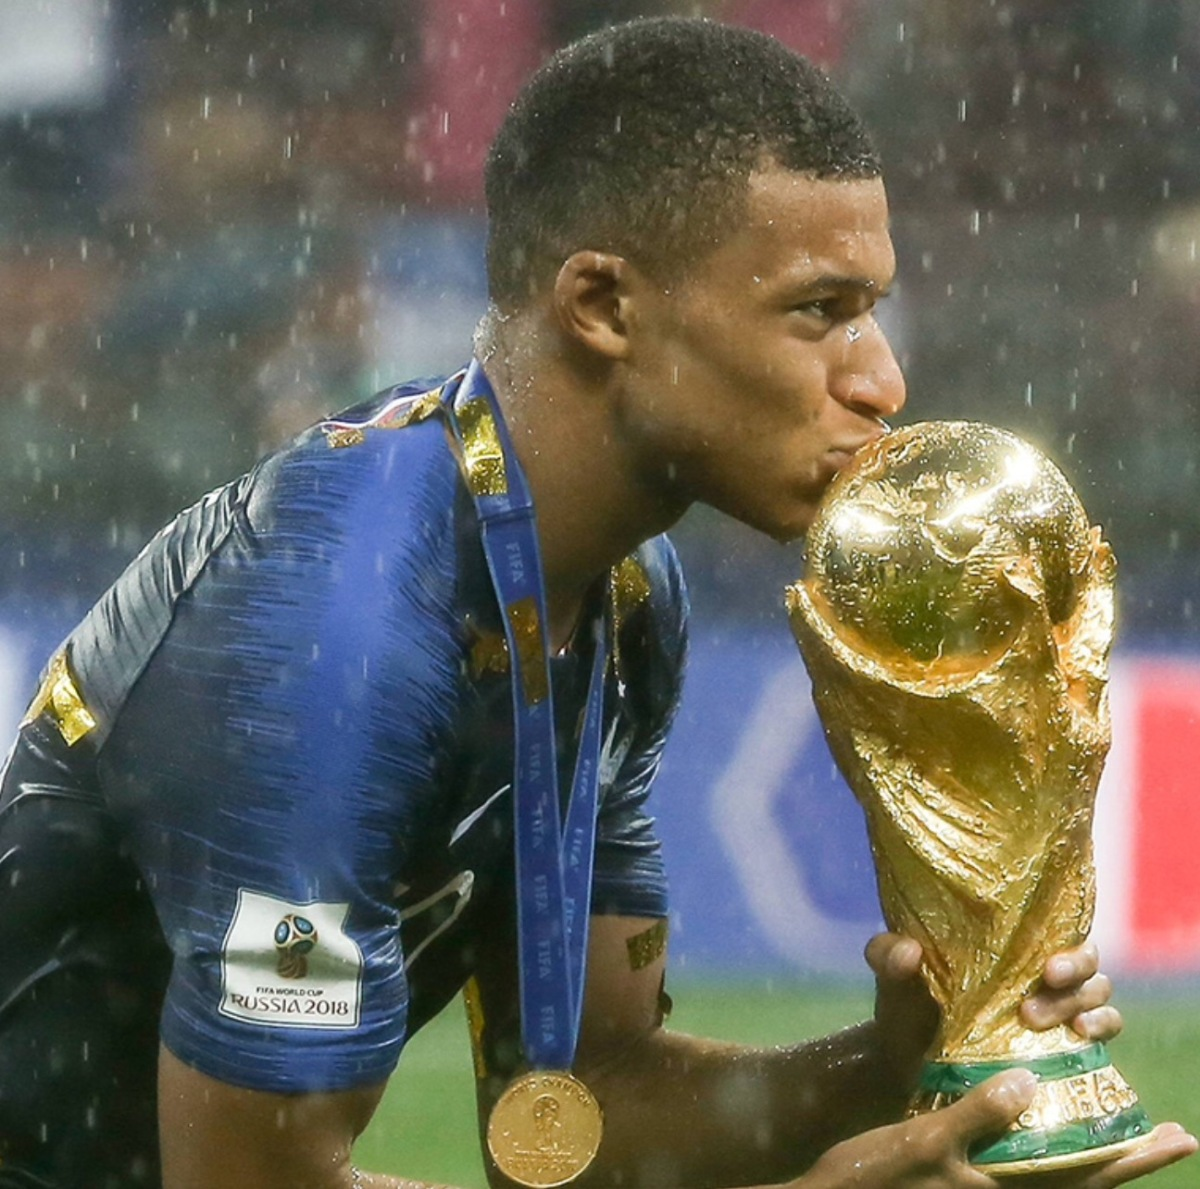 Kylian Mbappe è già più forte di Cristiano Ronaldo; vi spiego perché